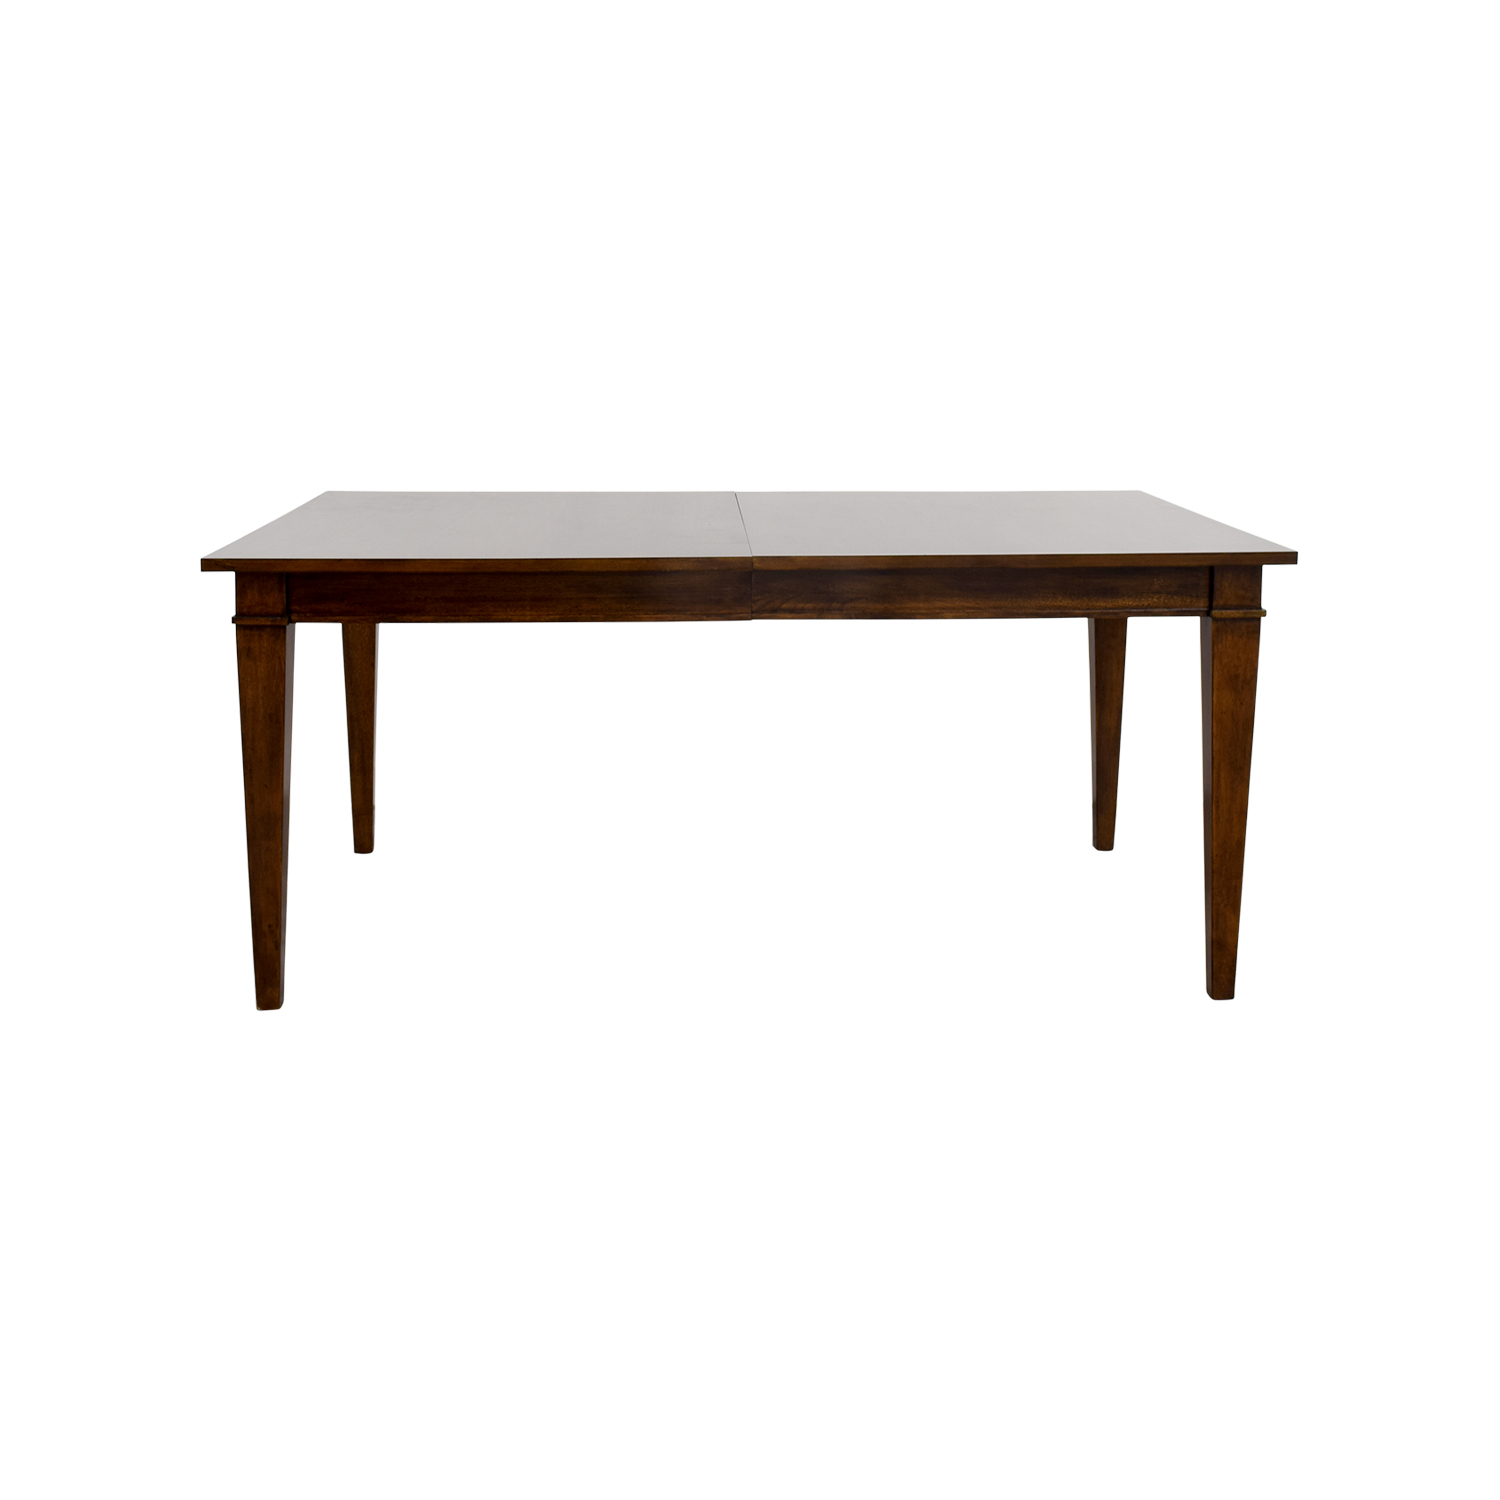 63 Off Ethan Allen Ethan Allen Dining Table Tables